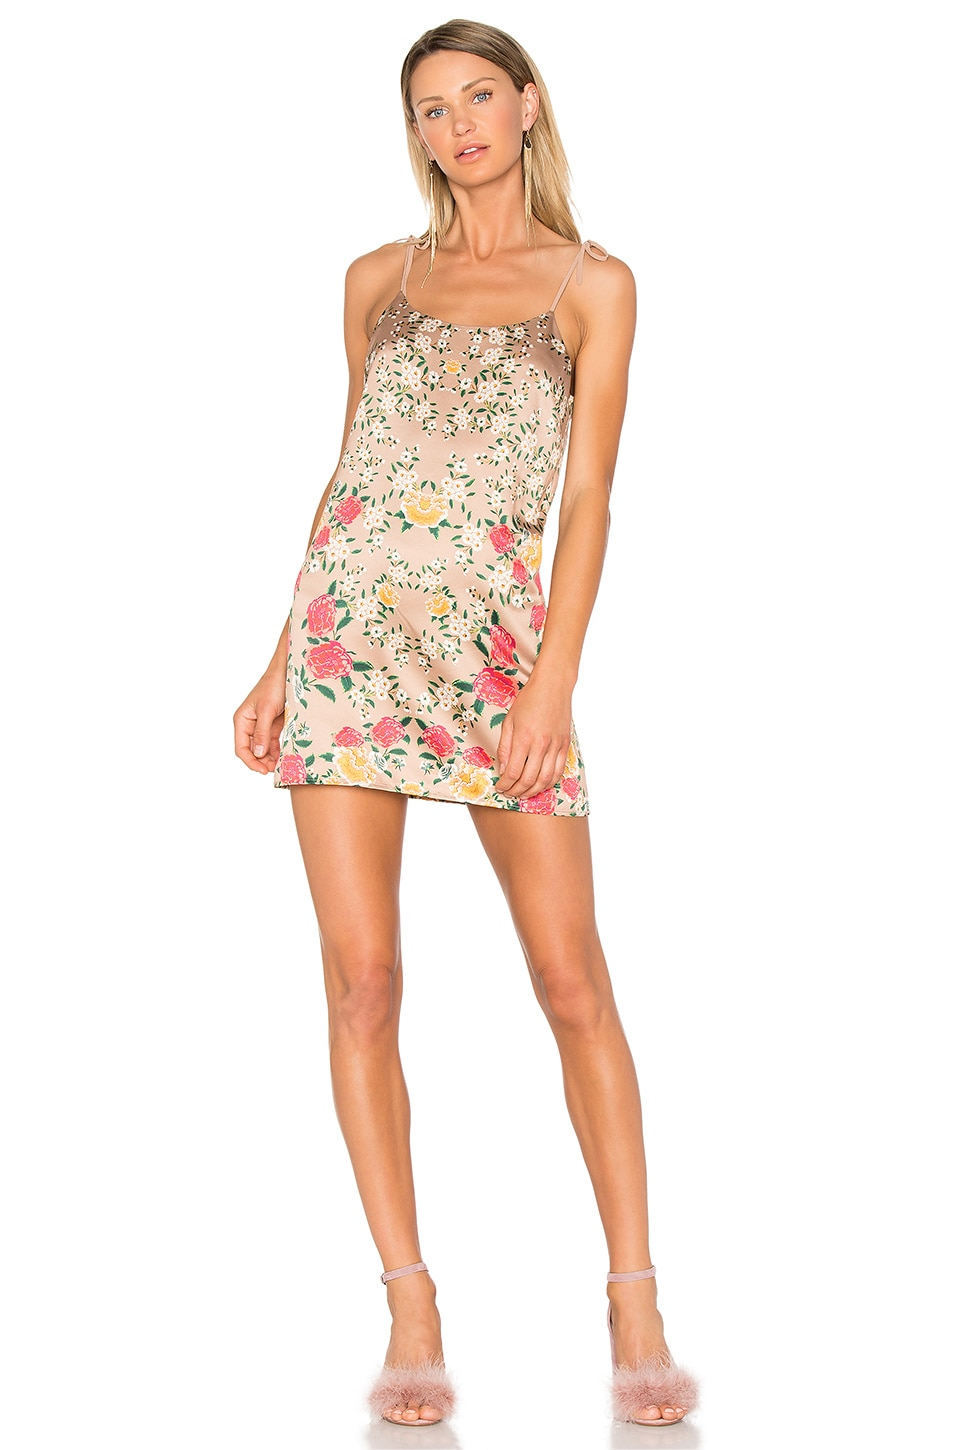 NBD Frieda Mini Dress in Sandy Rose Floral